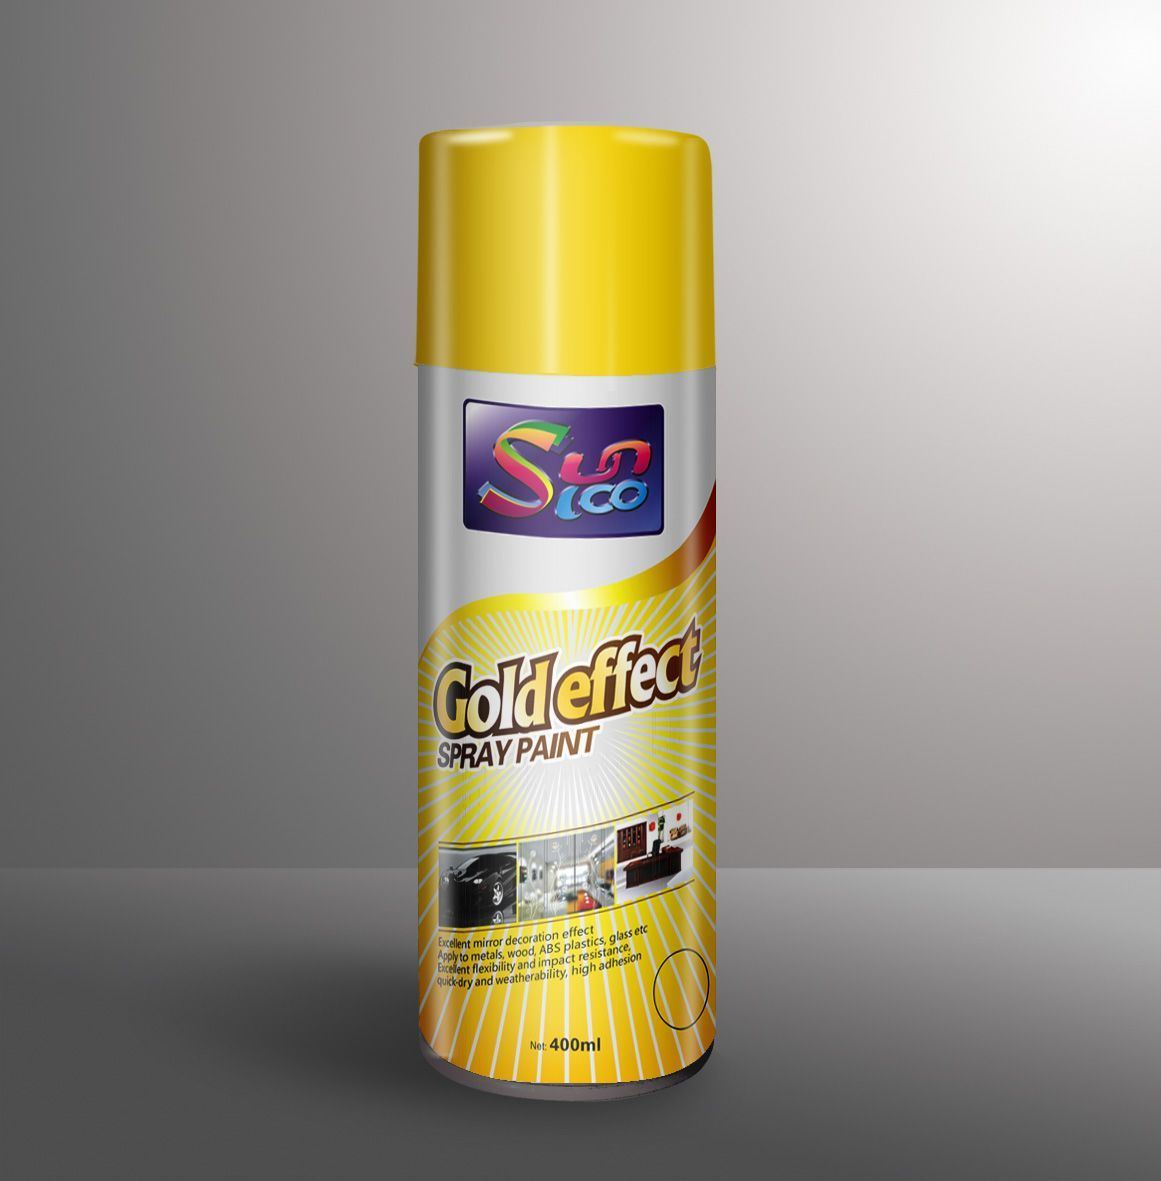 China Bright Gold Effect Spray Paint China Bright Gold Effect Spray Paint